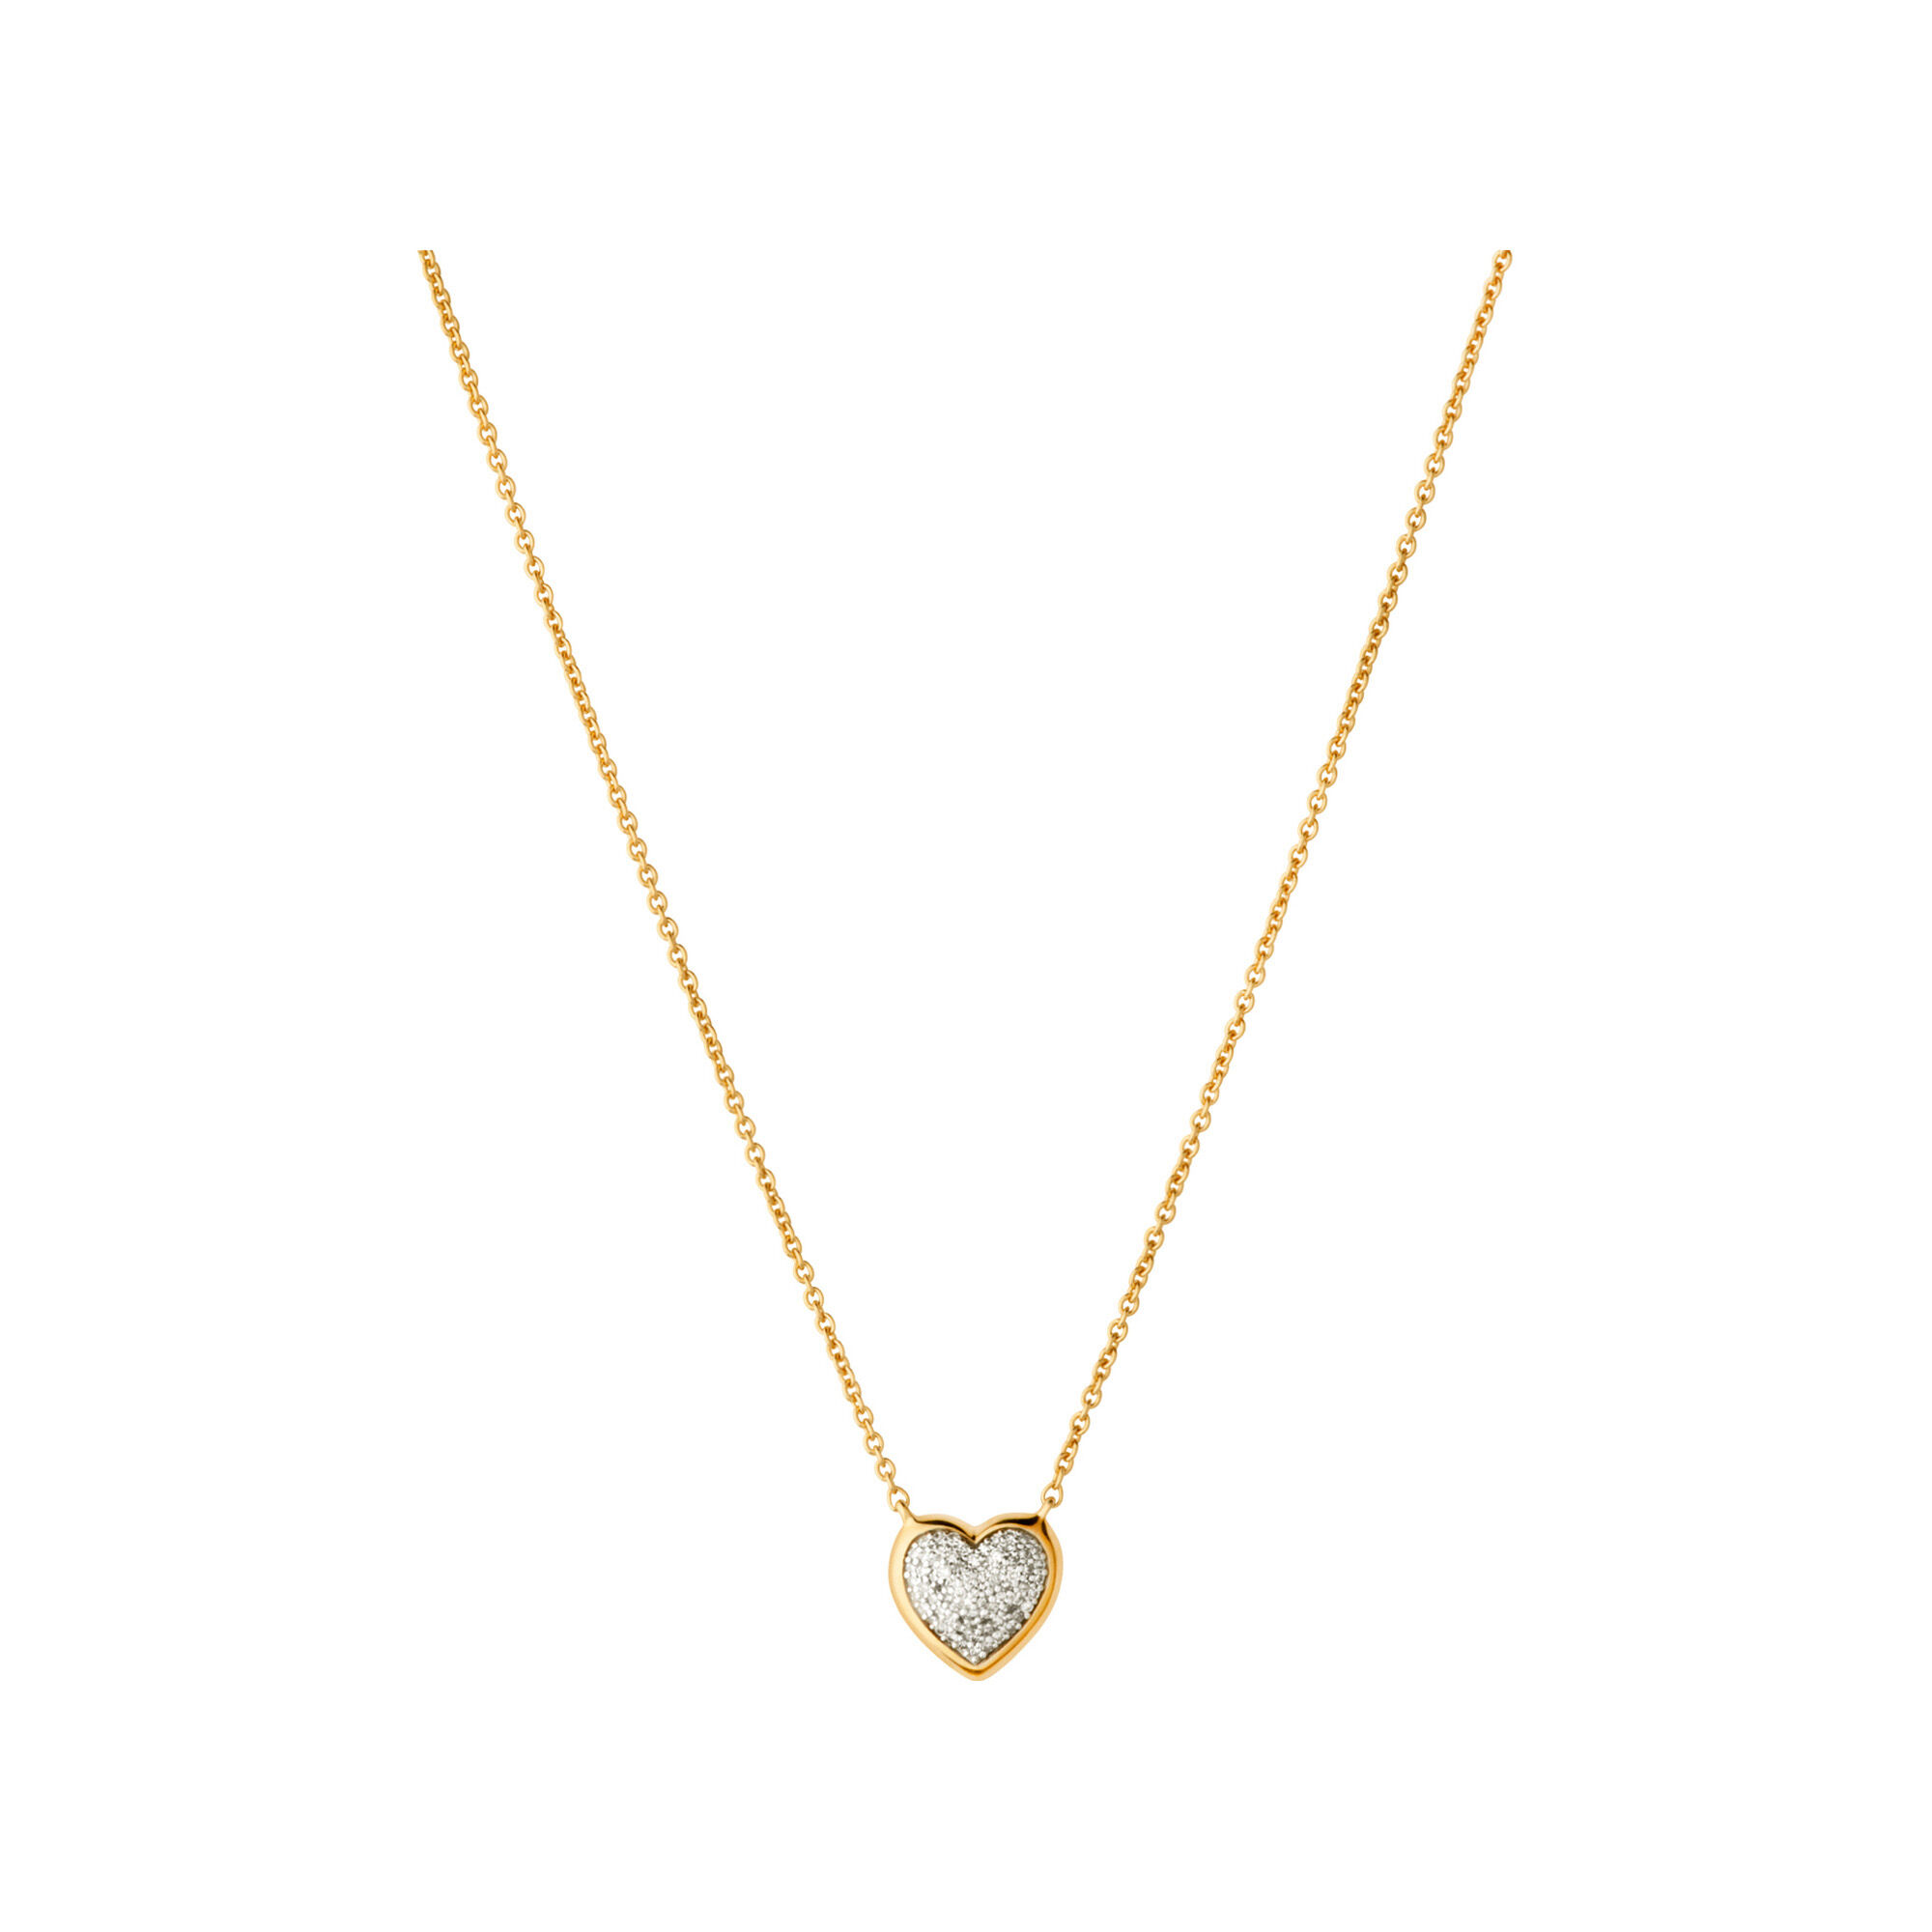 heart pave products fine gottlieb jewelry jewellery stephanie mini necklace